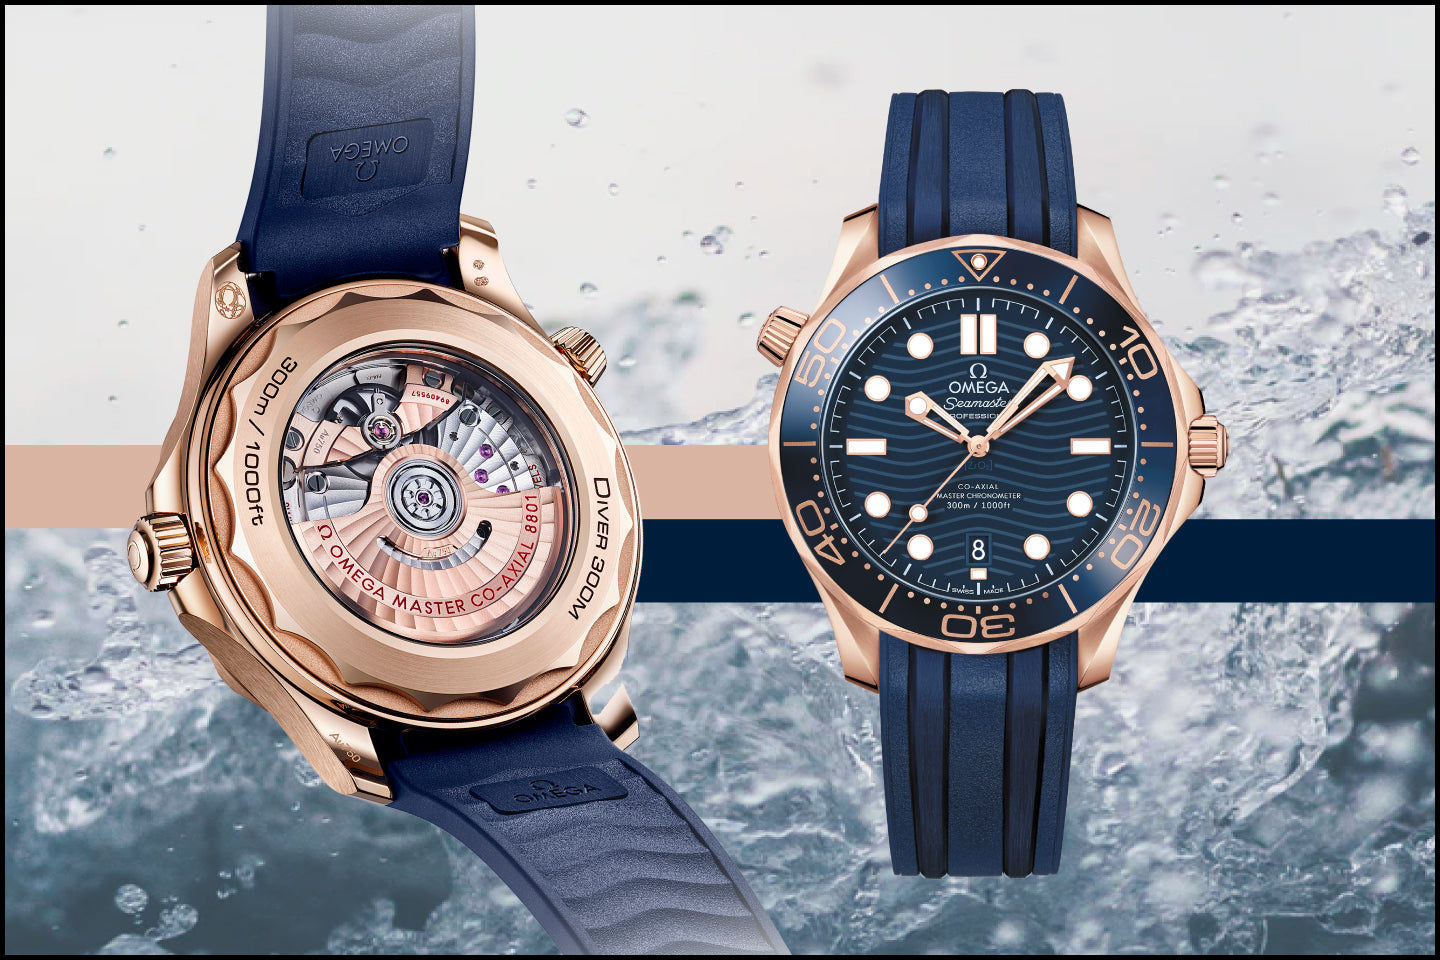 https://curatedition.com/watches-and-jewellery/omega-the-seamaster-diver-300m-in-2019/